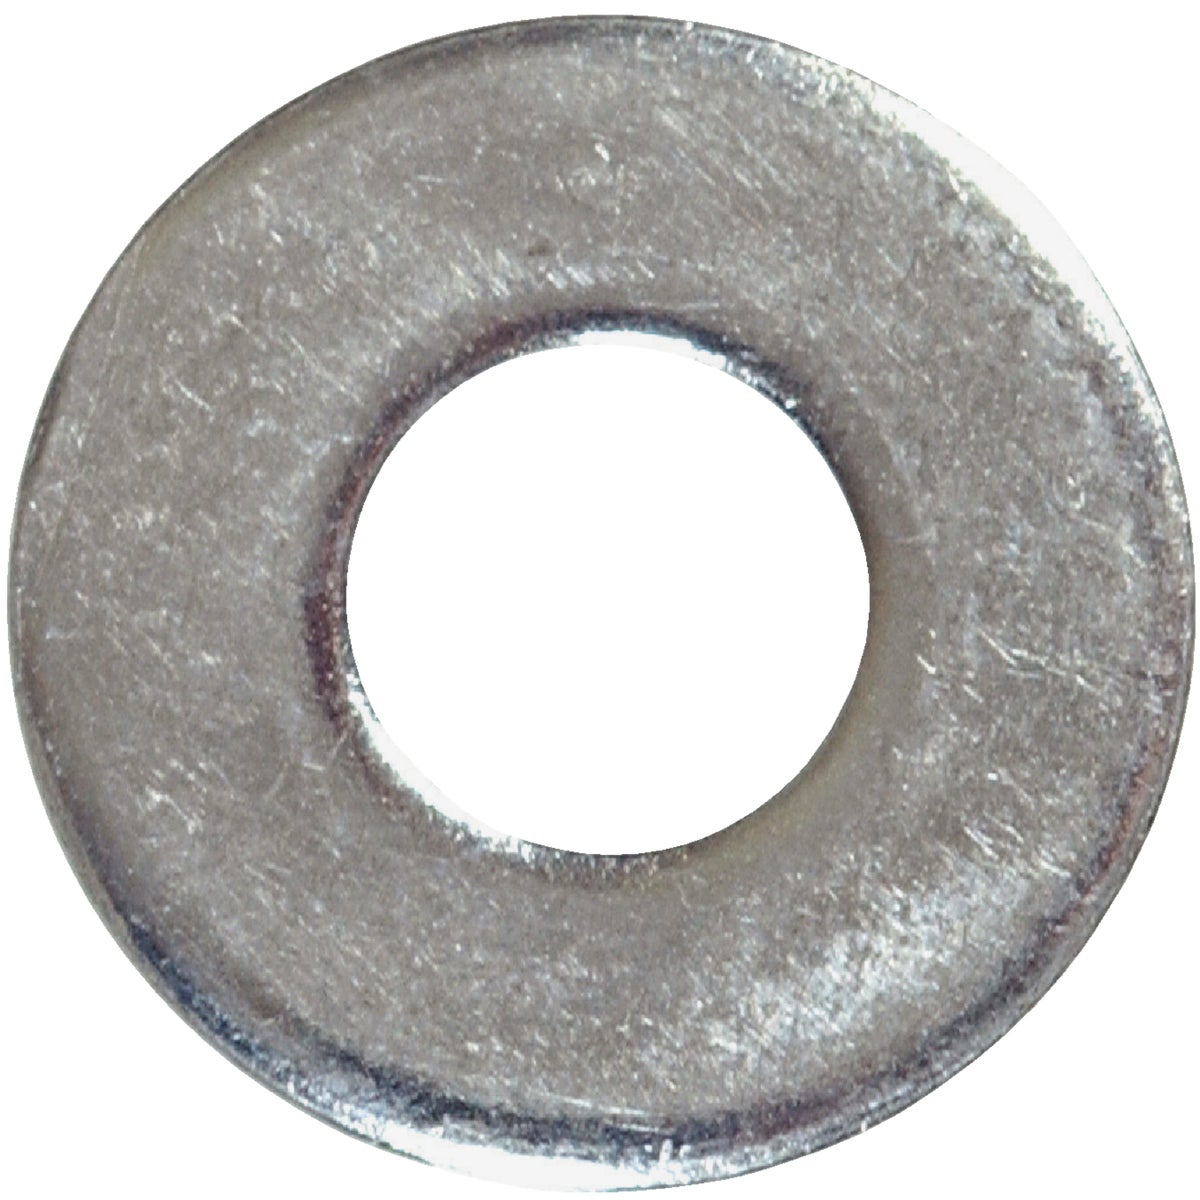 "100PC 3/8"" SAE FL WASHER - 280060 by Hillman Fastener"